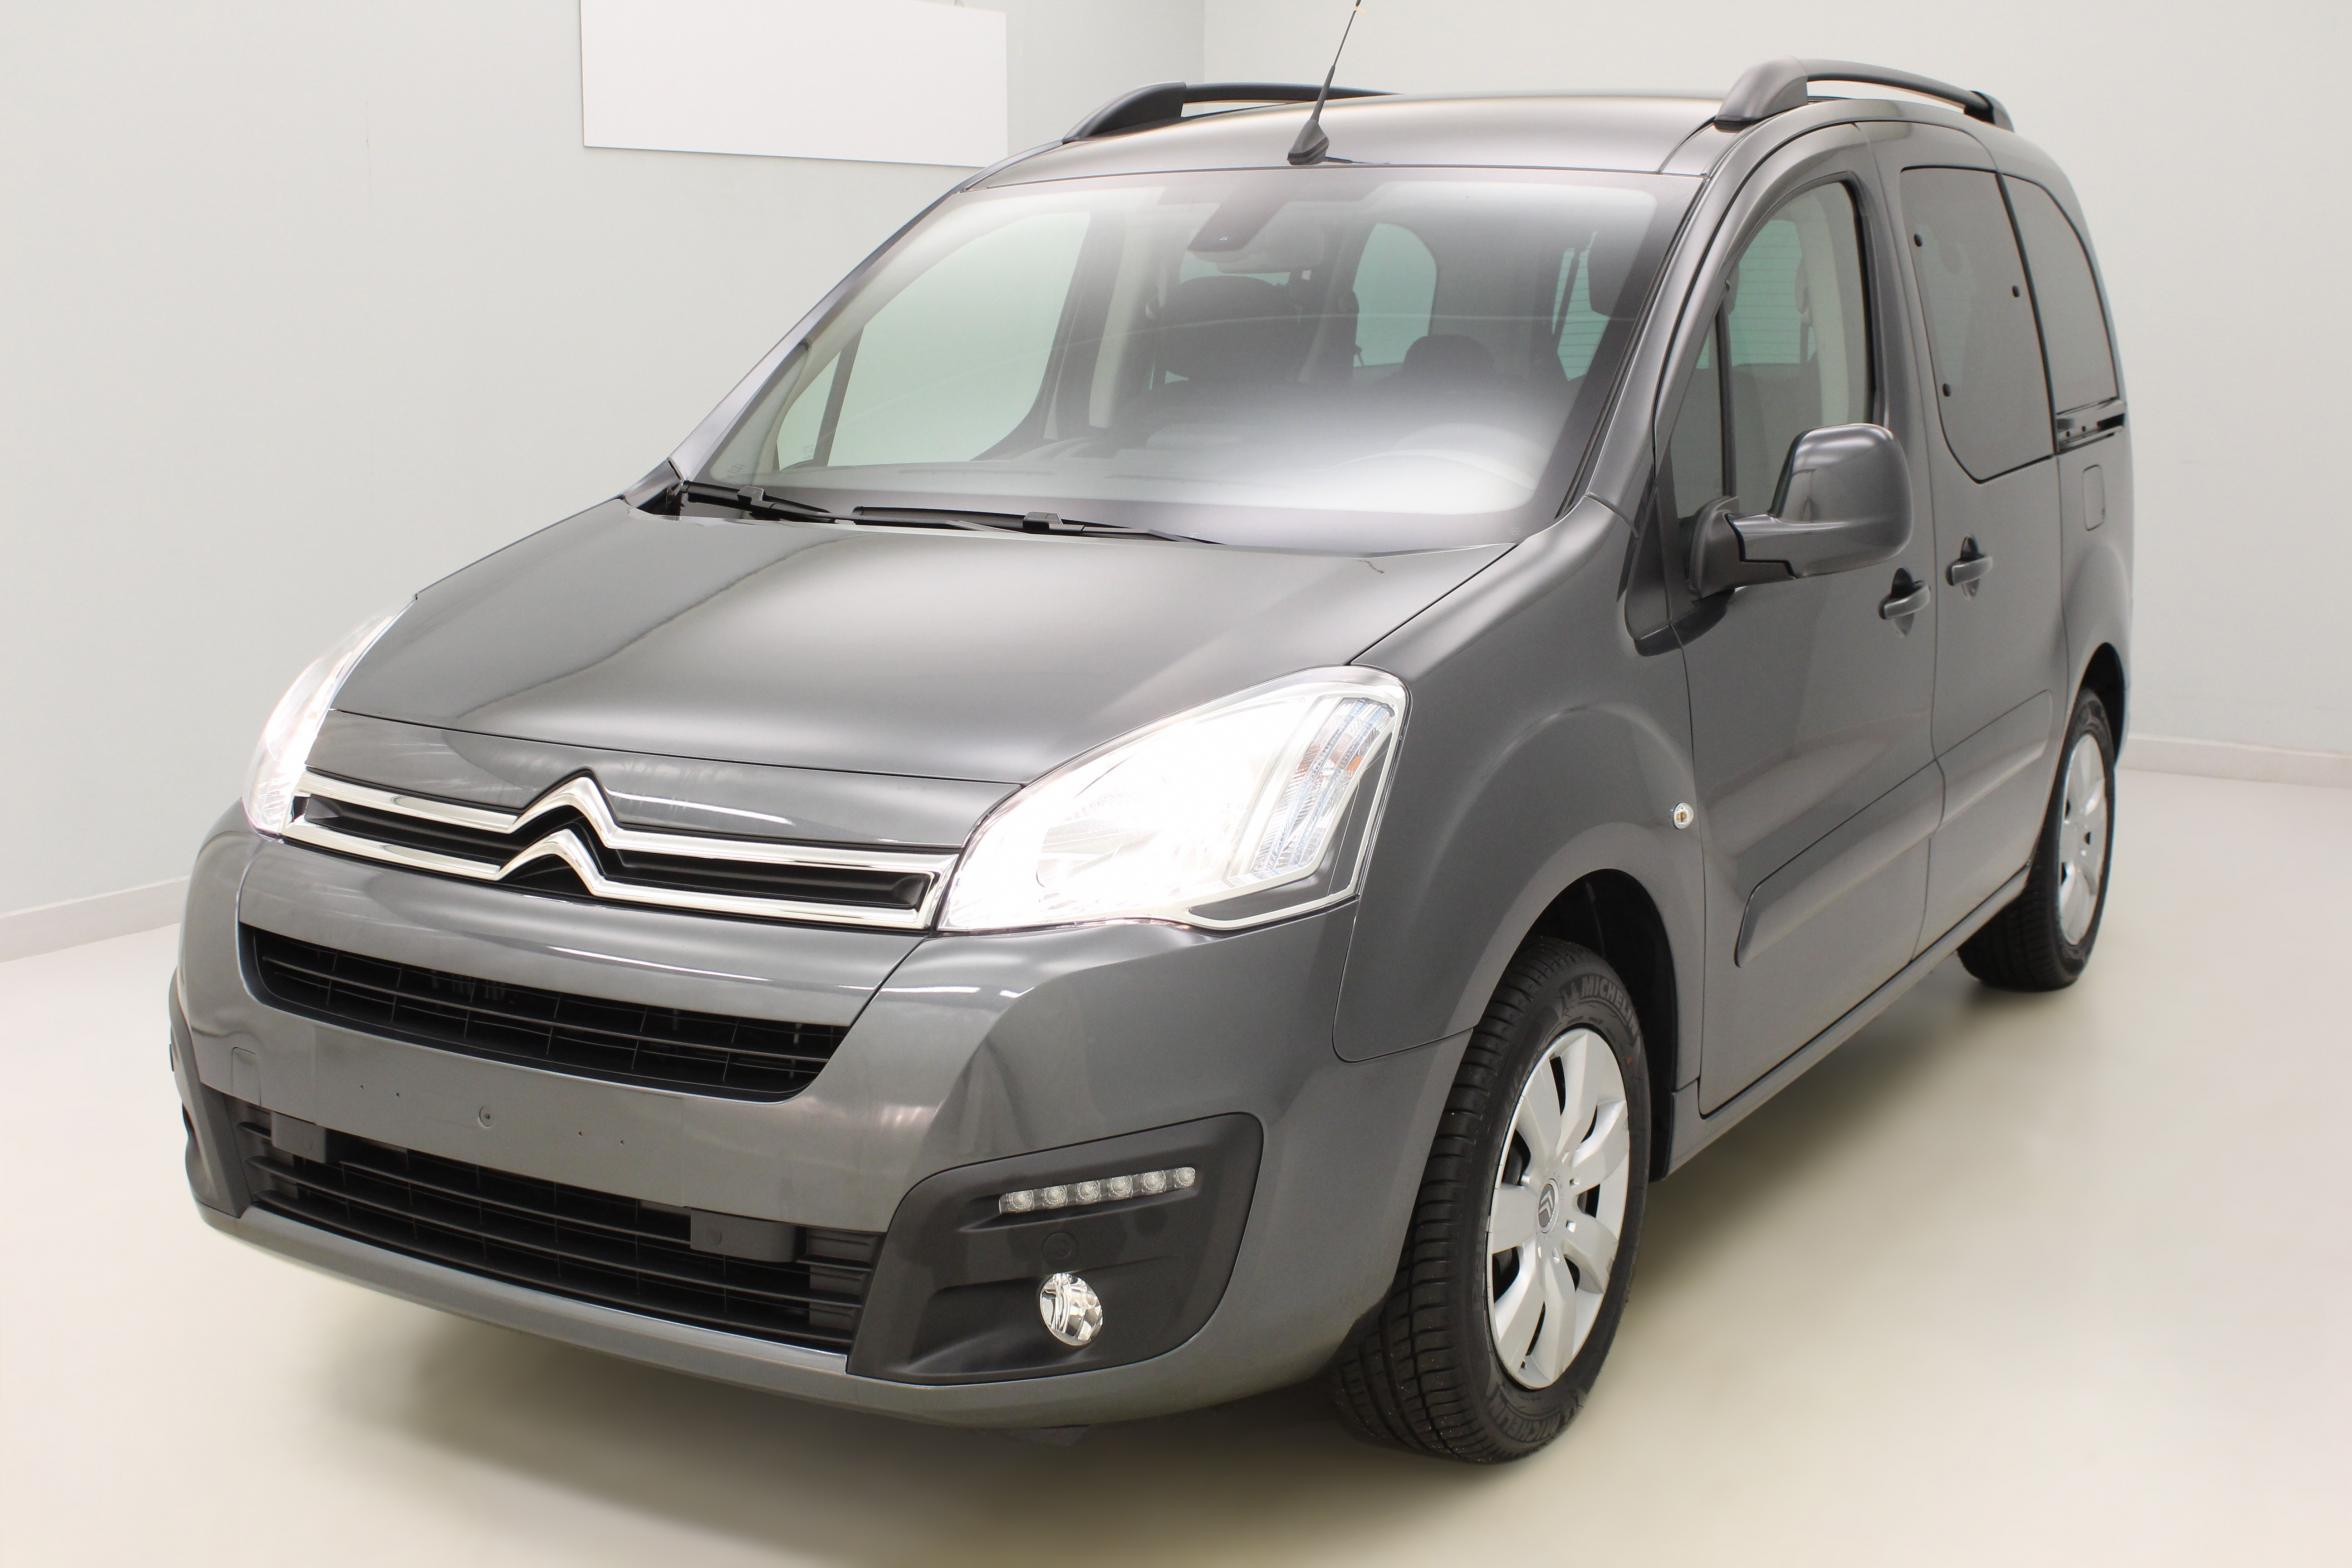 CITROEN Berlingo Multispace BlueHDi 120 S&S Shine Gris Shark + Caméra de recul + Garantie 3 ans ou 100 000 kms avec options